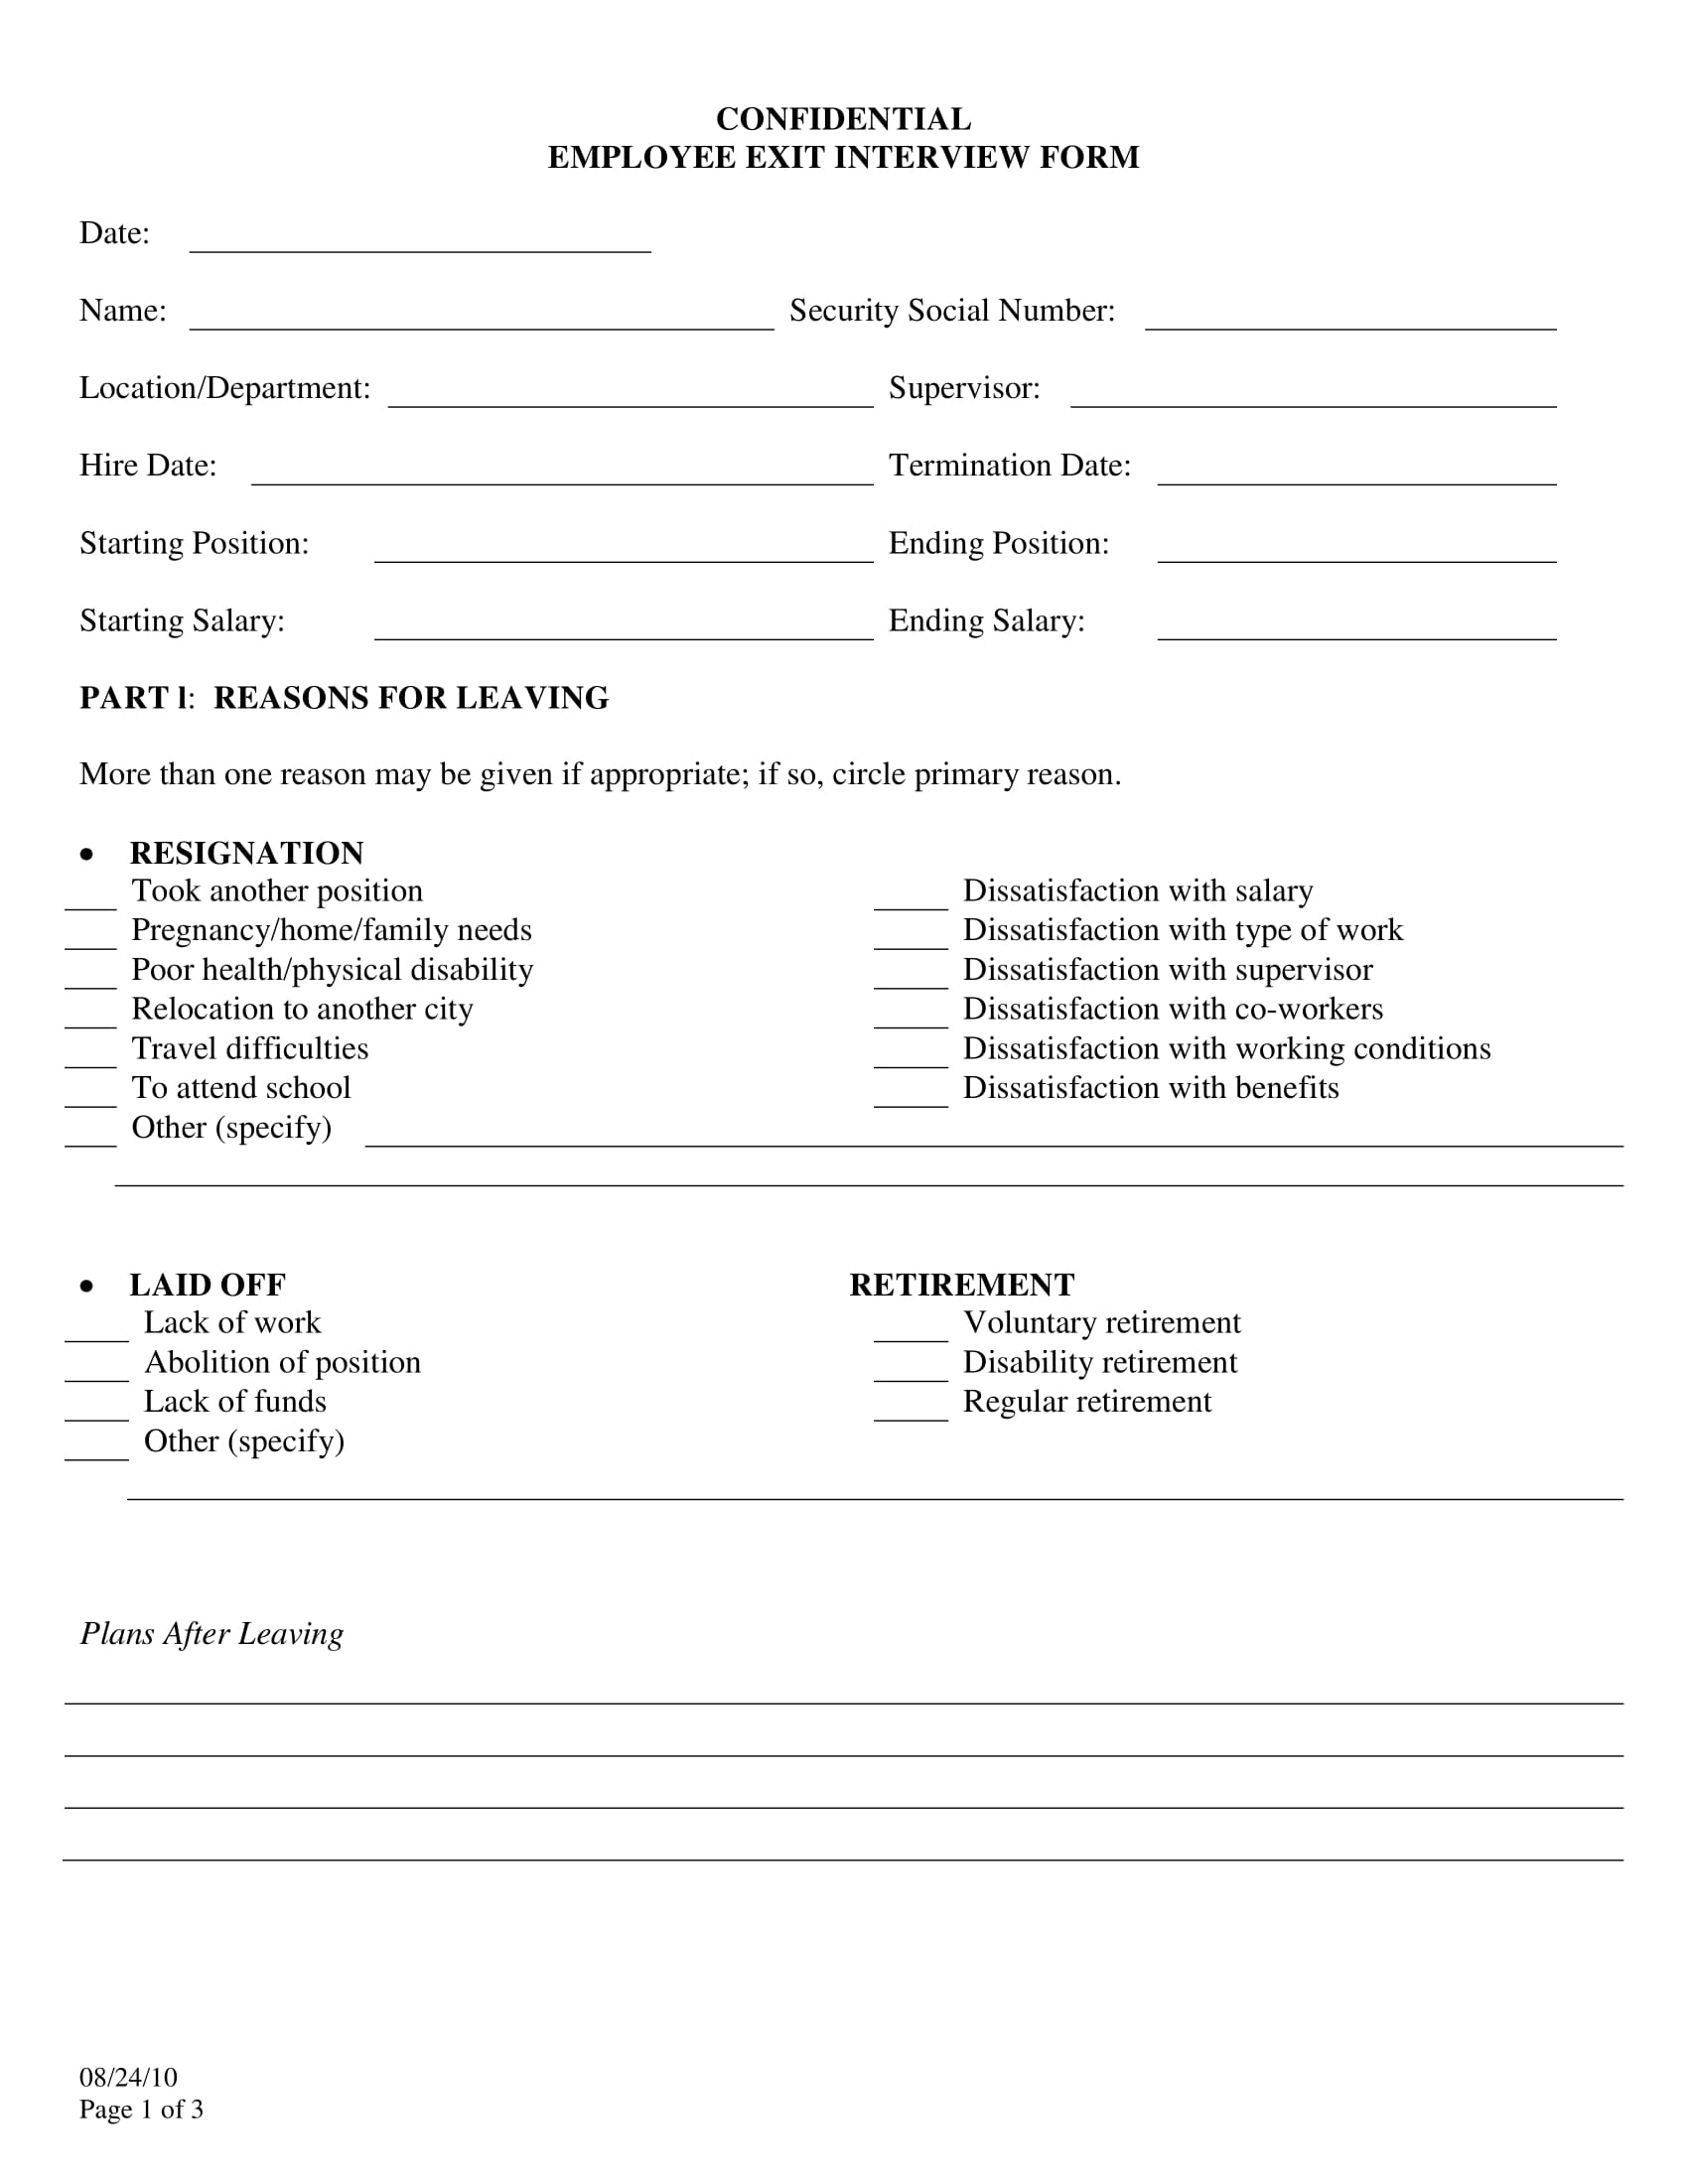 employee exit interview form 1